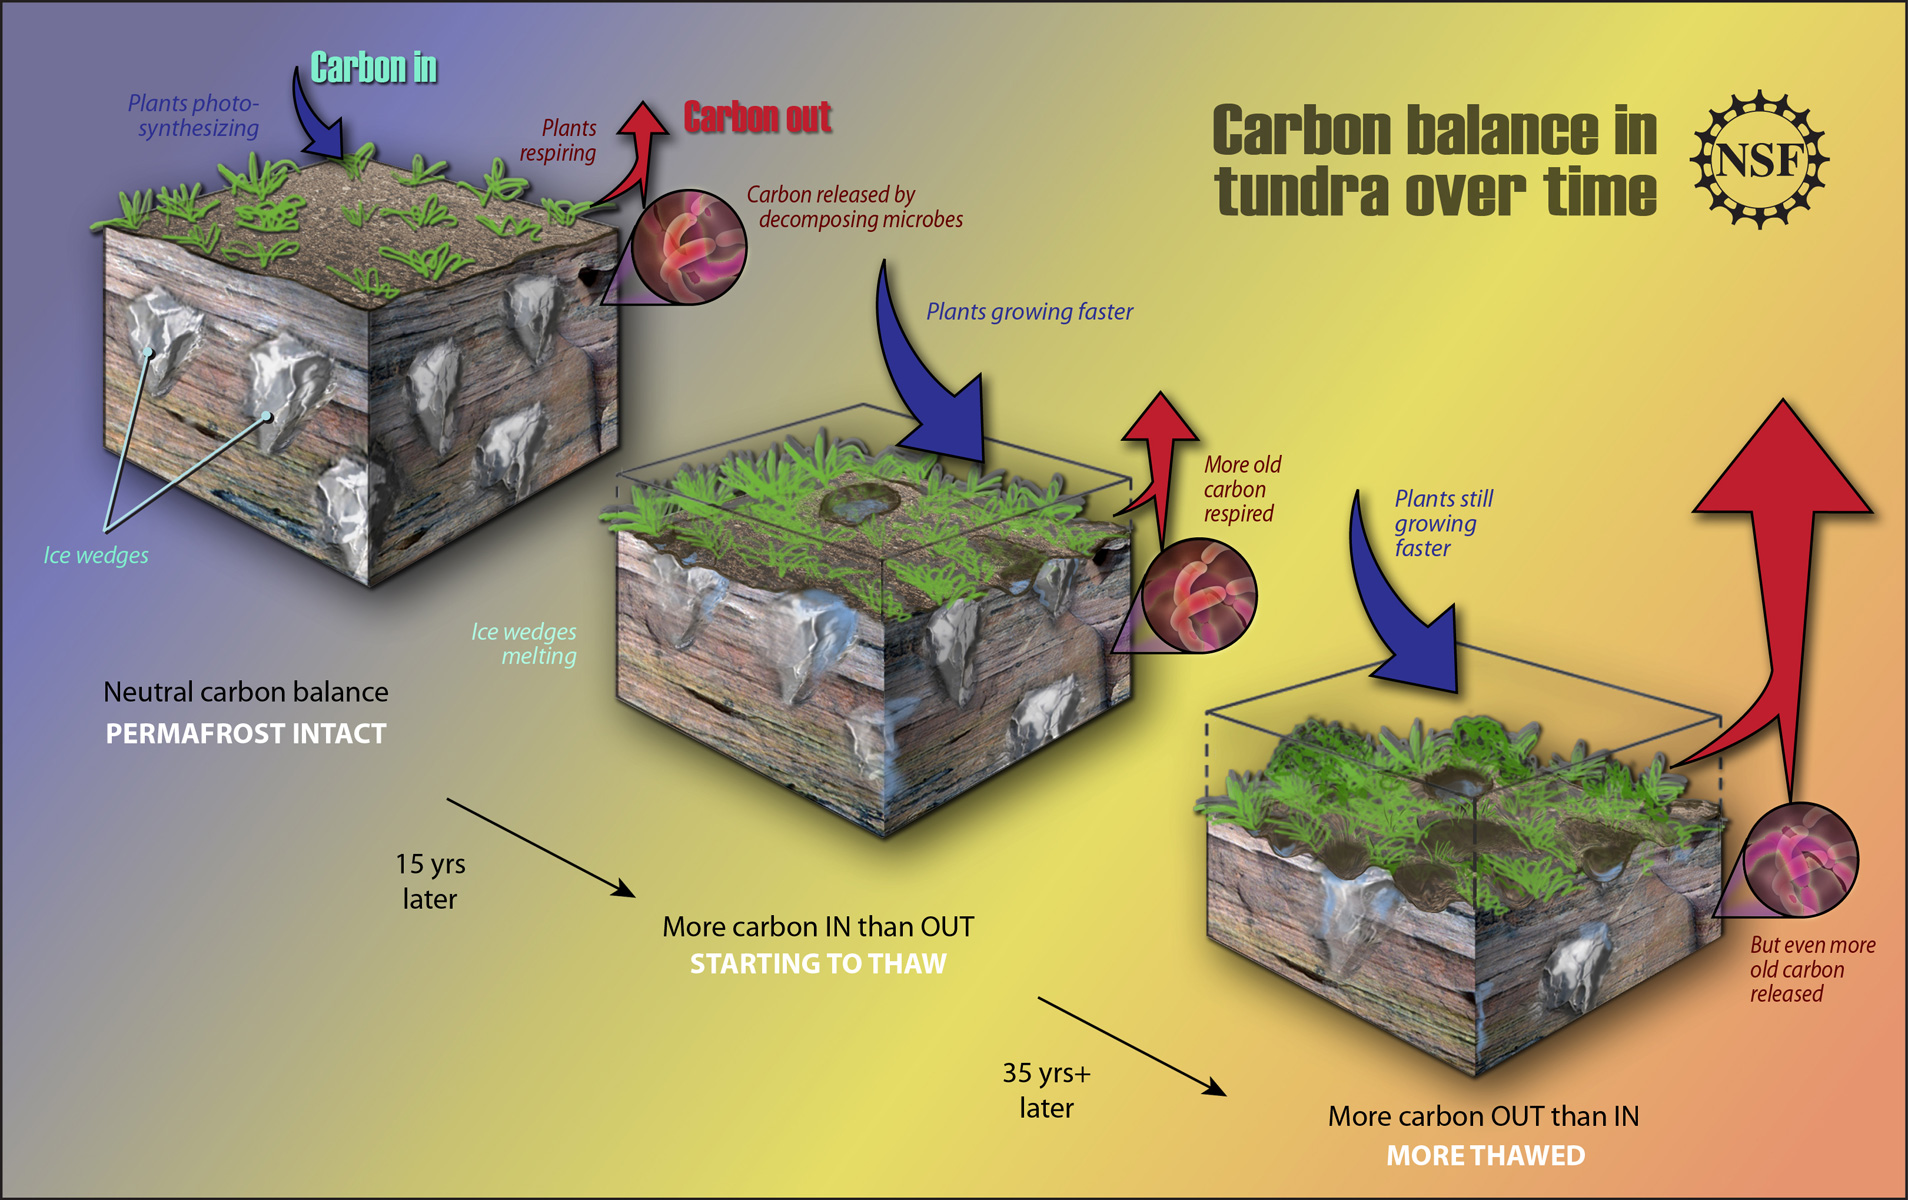 Arctic double whammy carbon release from thawing for 0 4 soil carbon